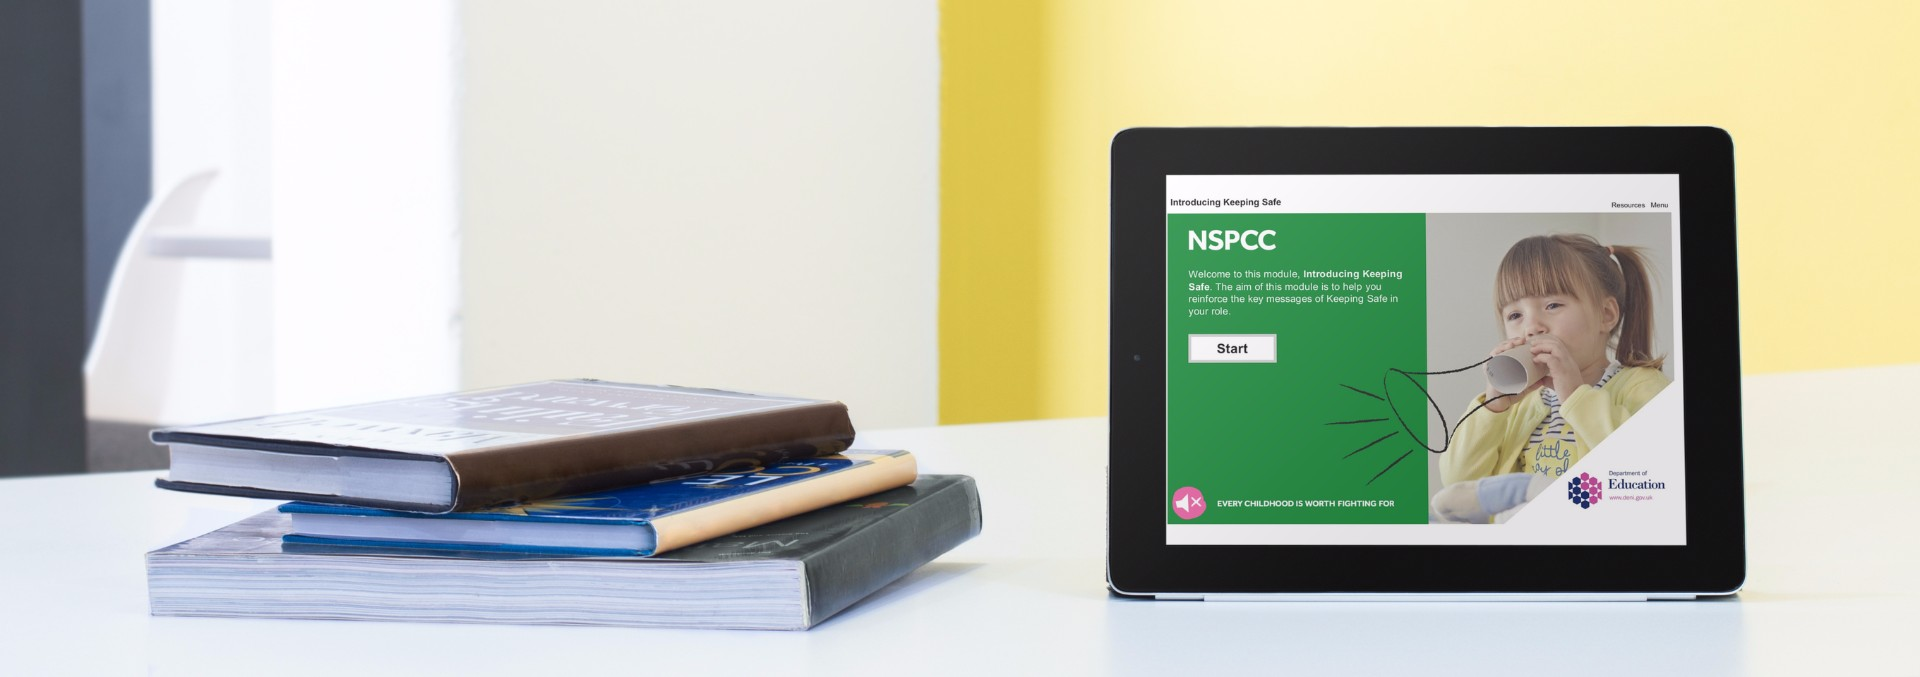 NSPCC resource.jpg